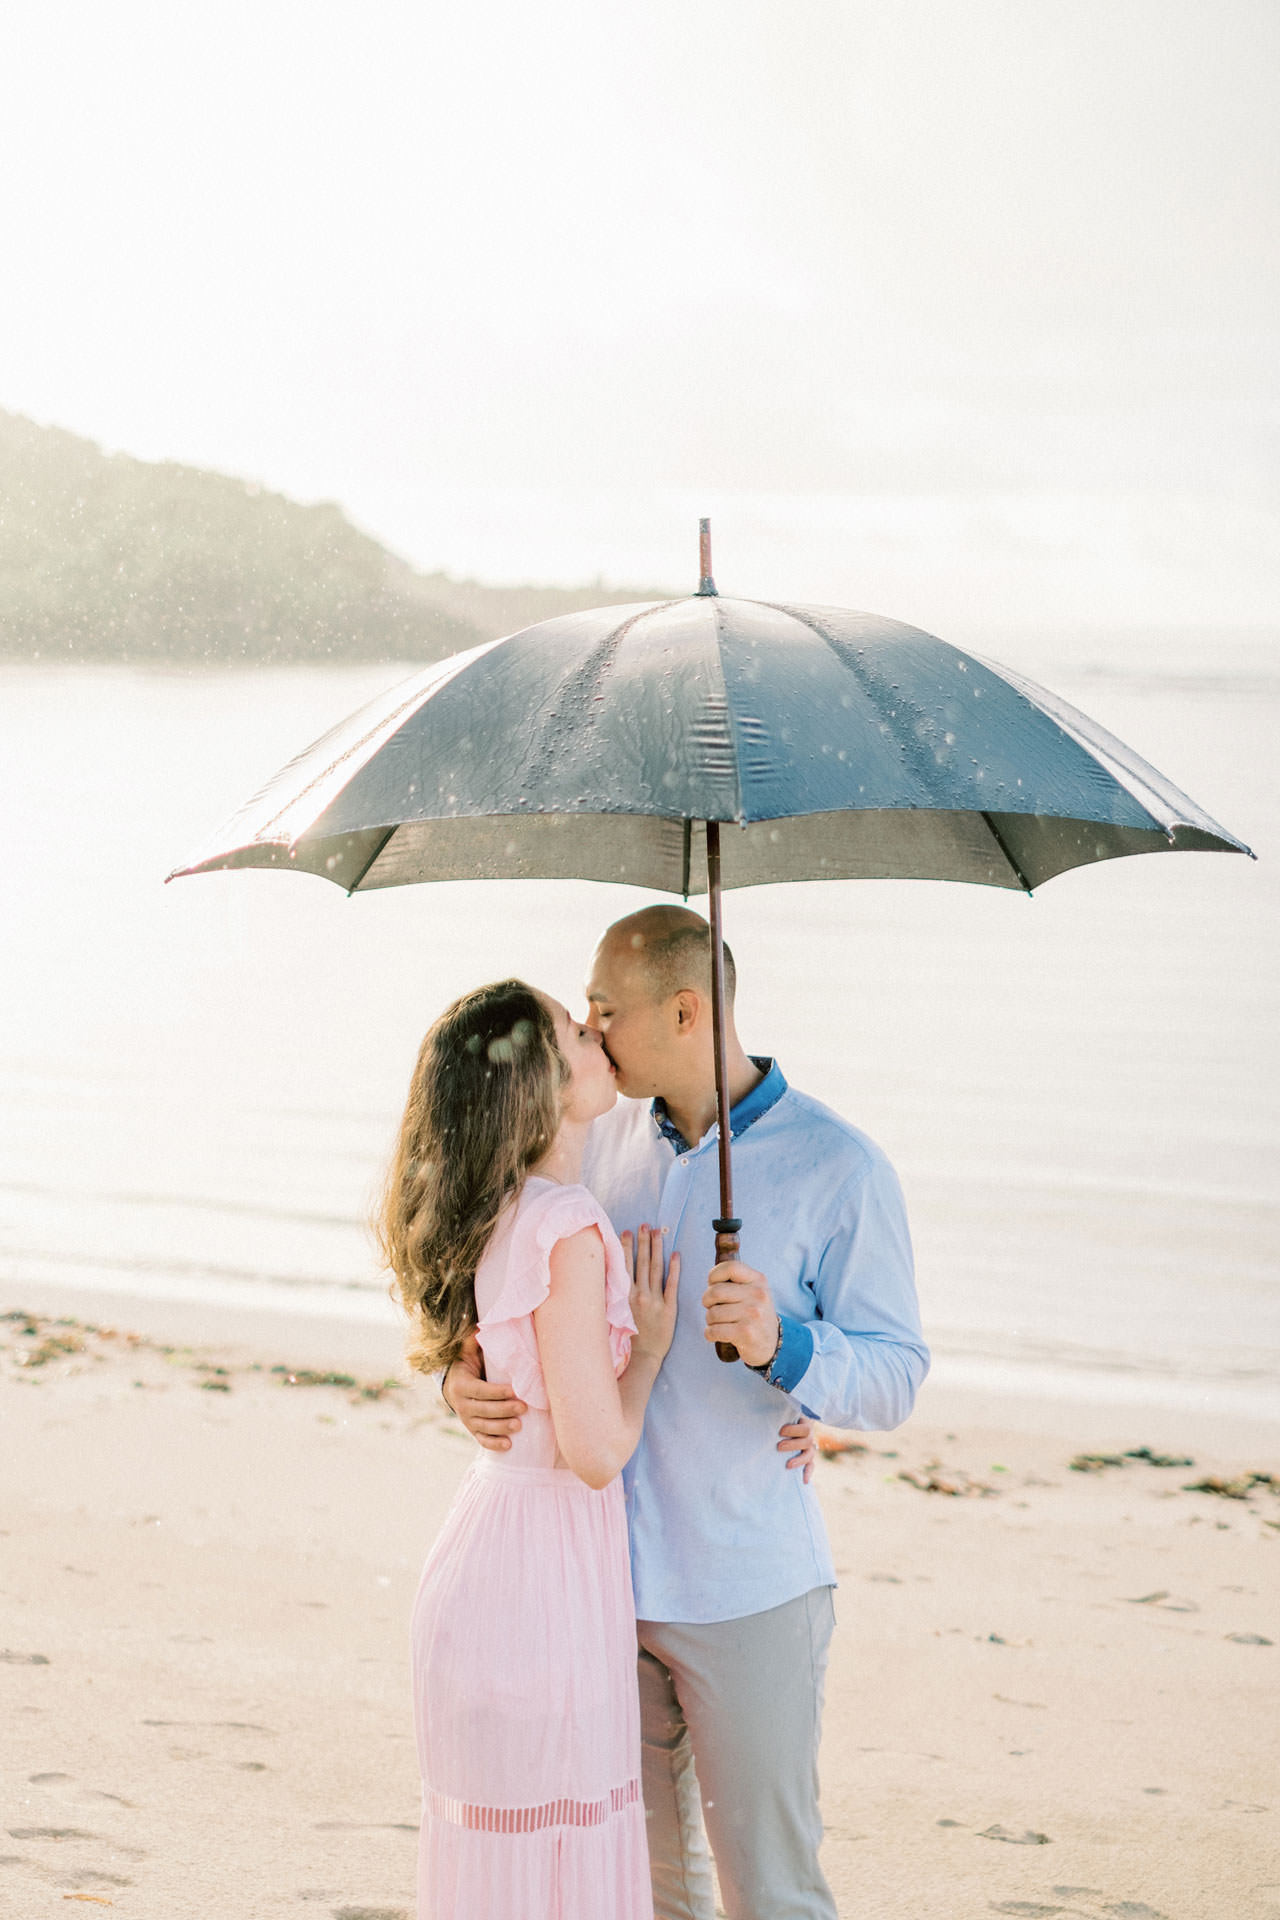 N&D: Sunrise Melasti Beach Bali Prewedding Photos 2